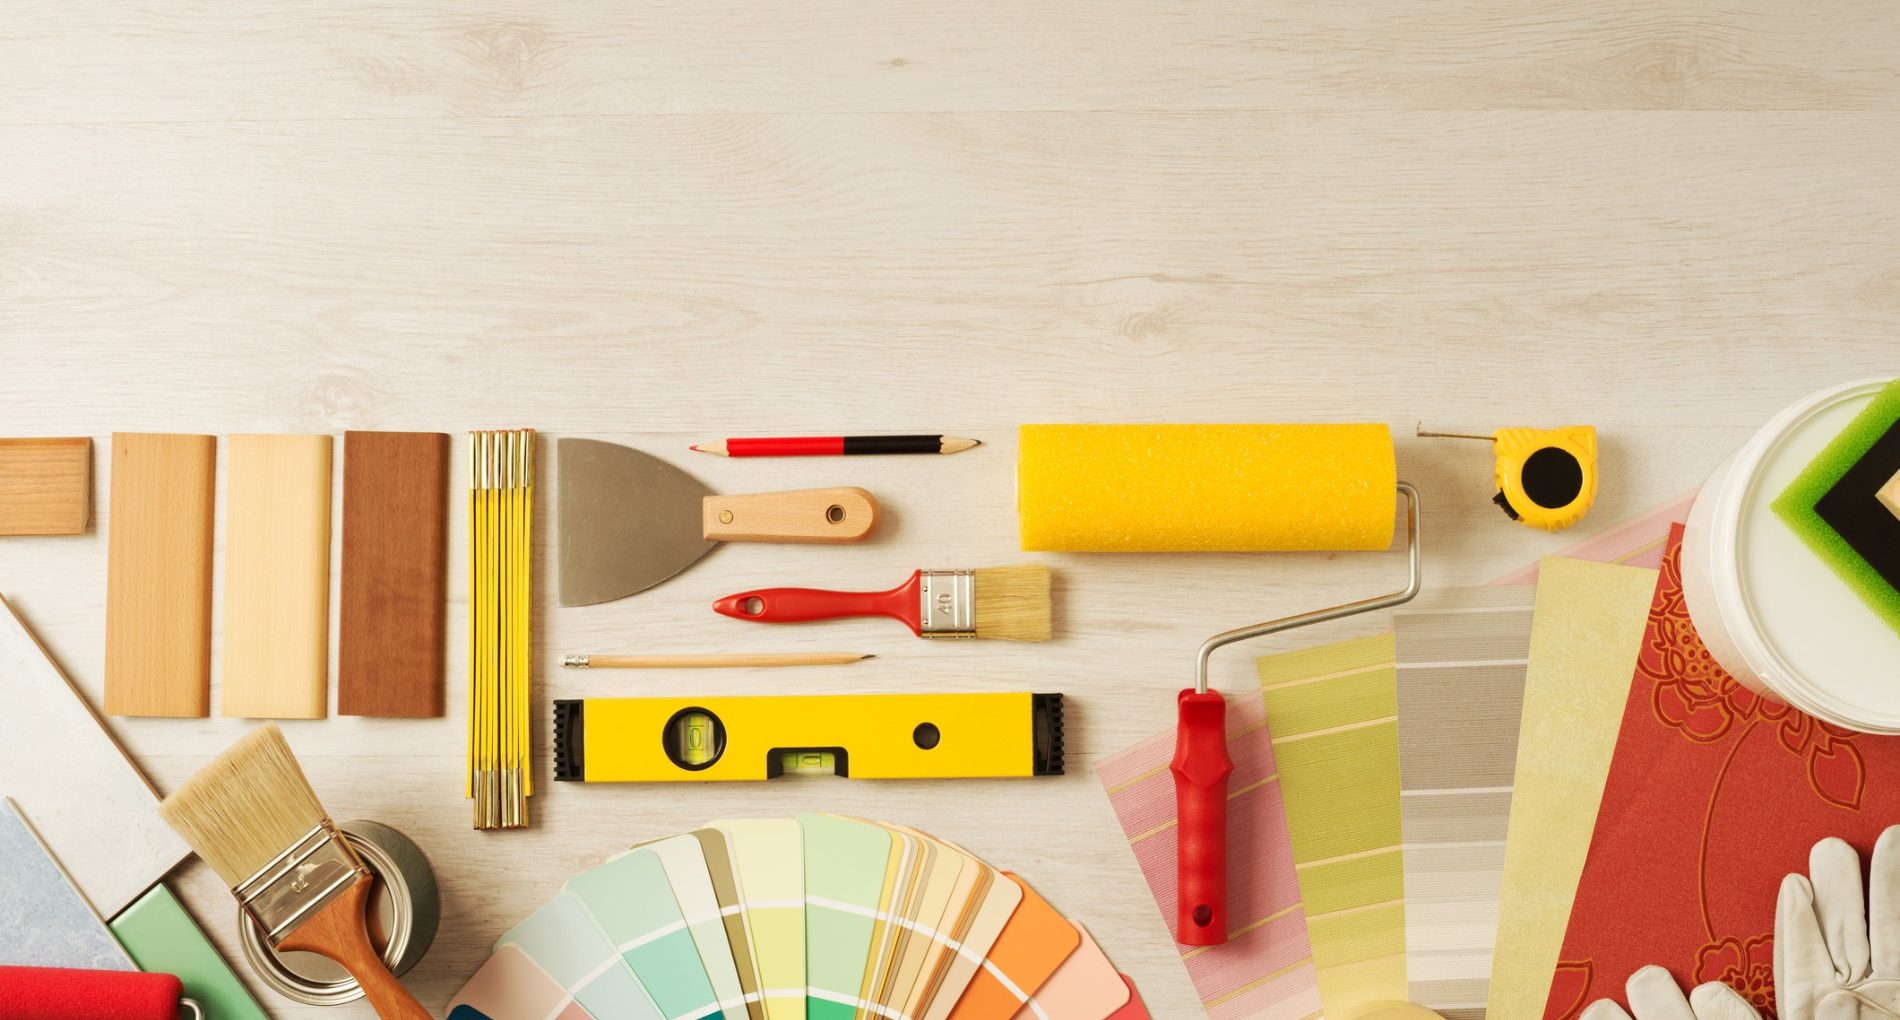 How Much Does a Home Remodel Cost and How Long Does it Take?